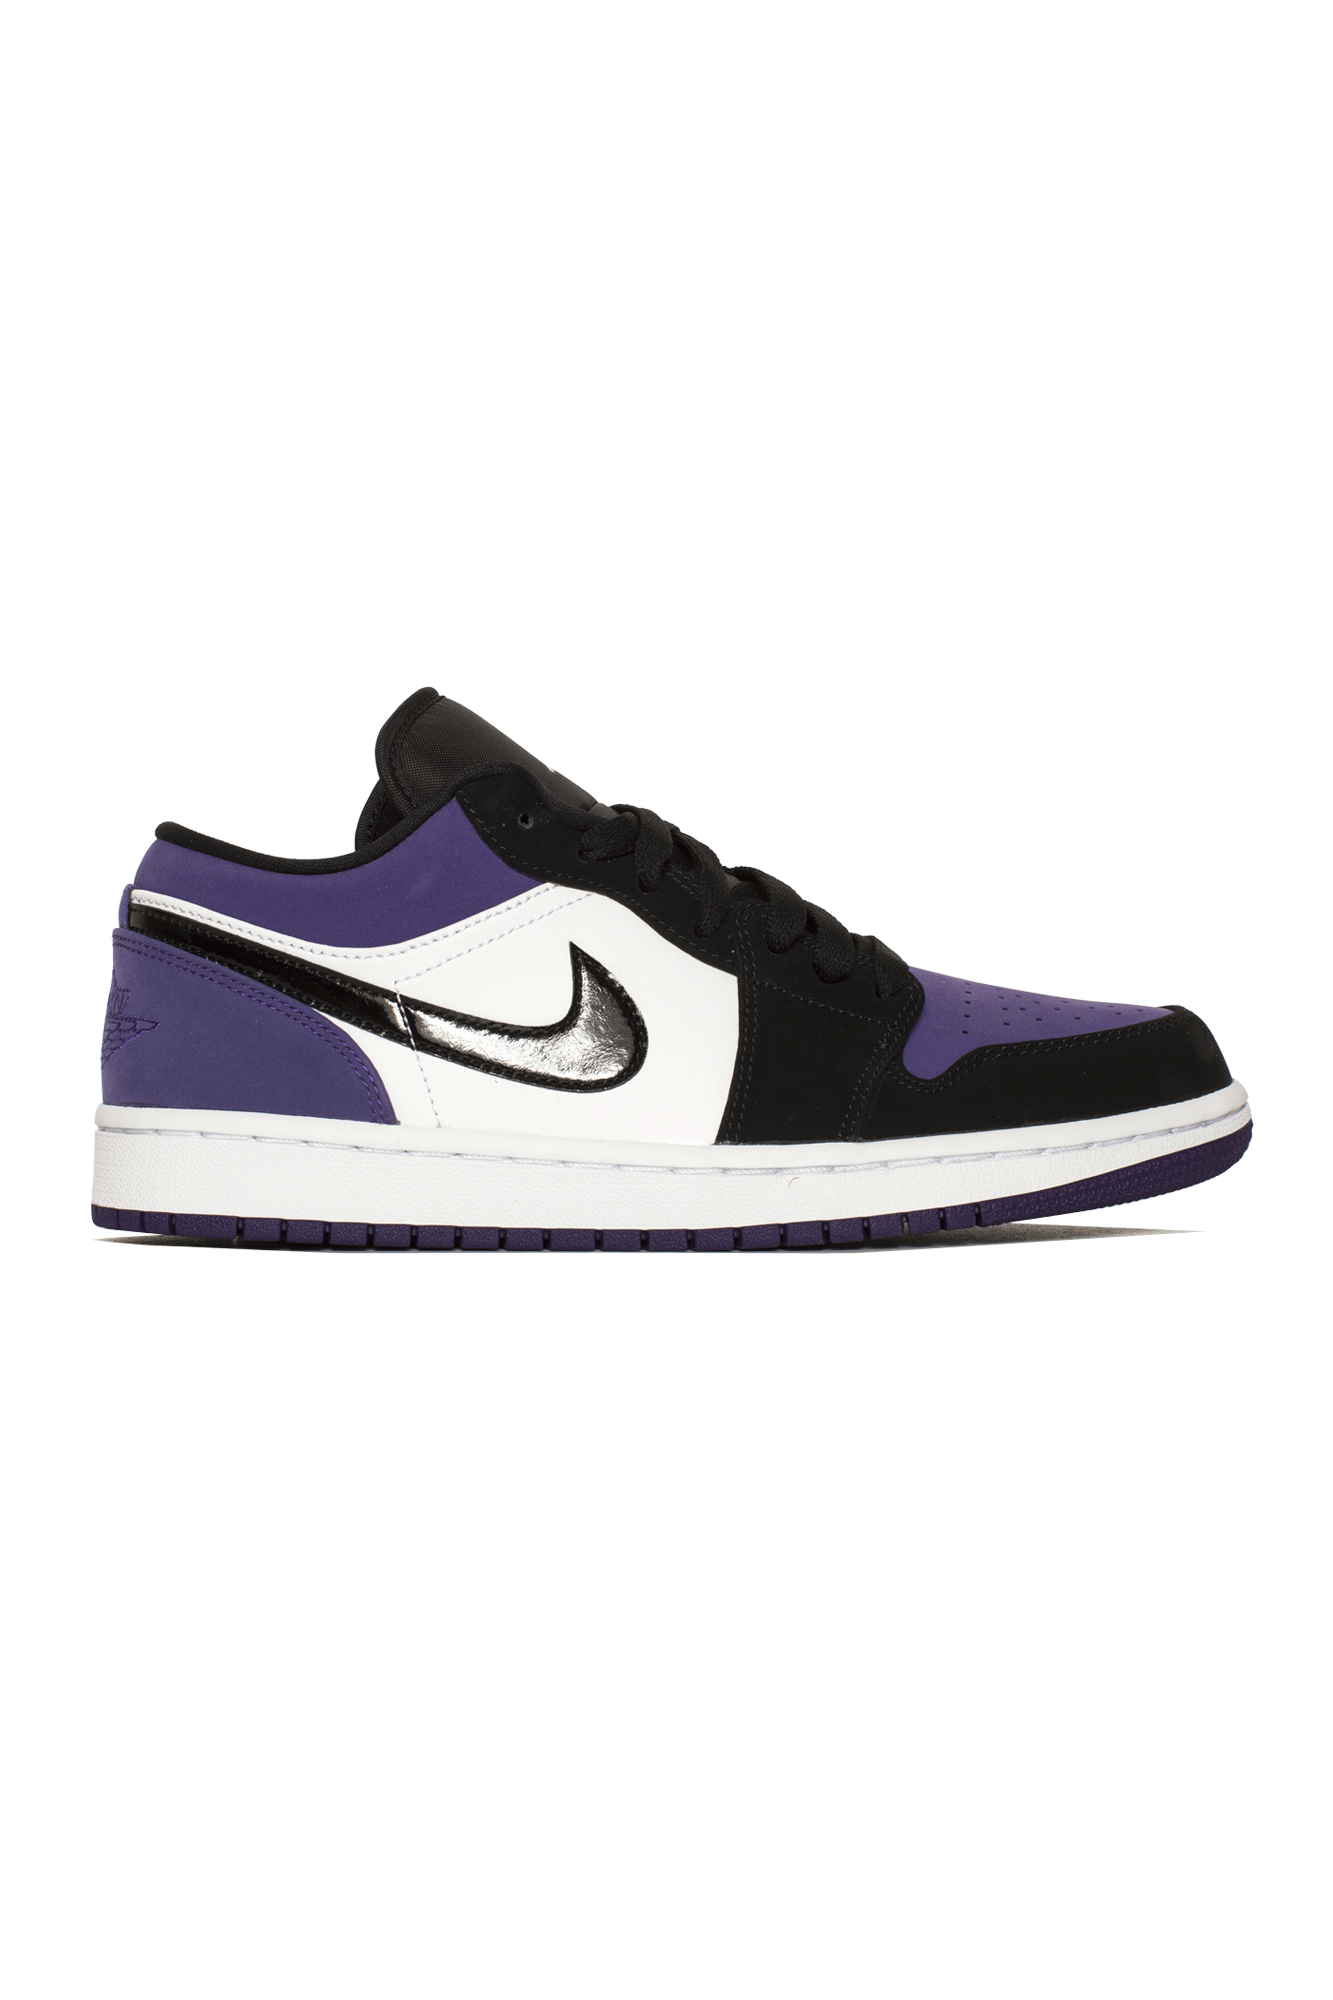 air jordan 1 low uomo viola